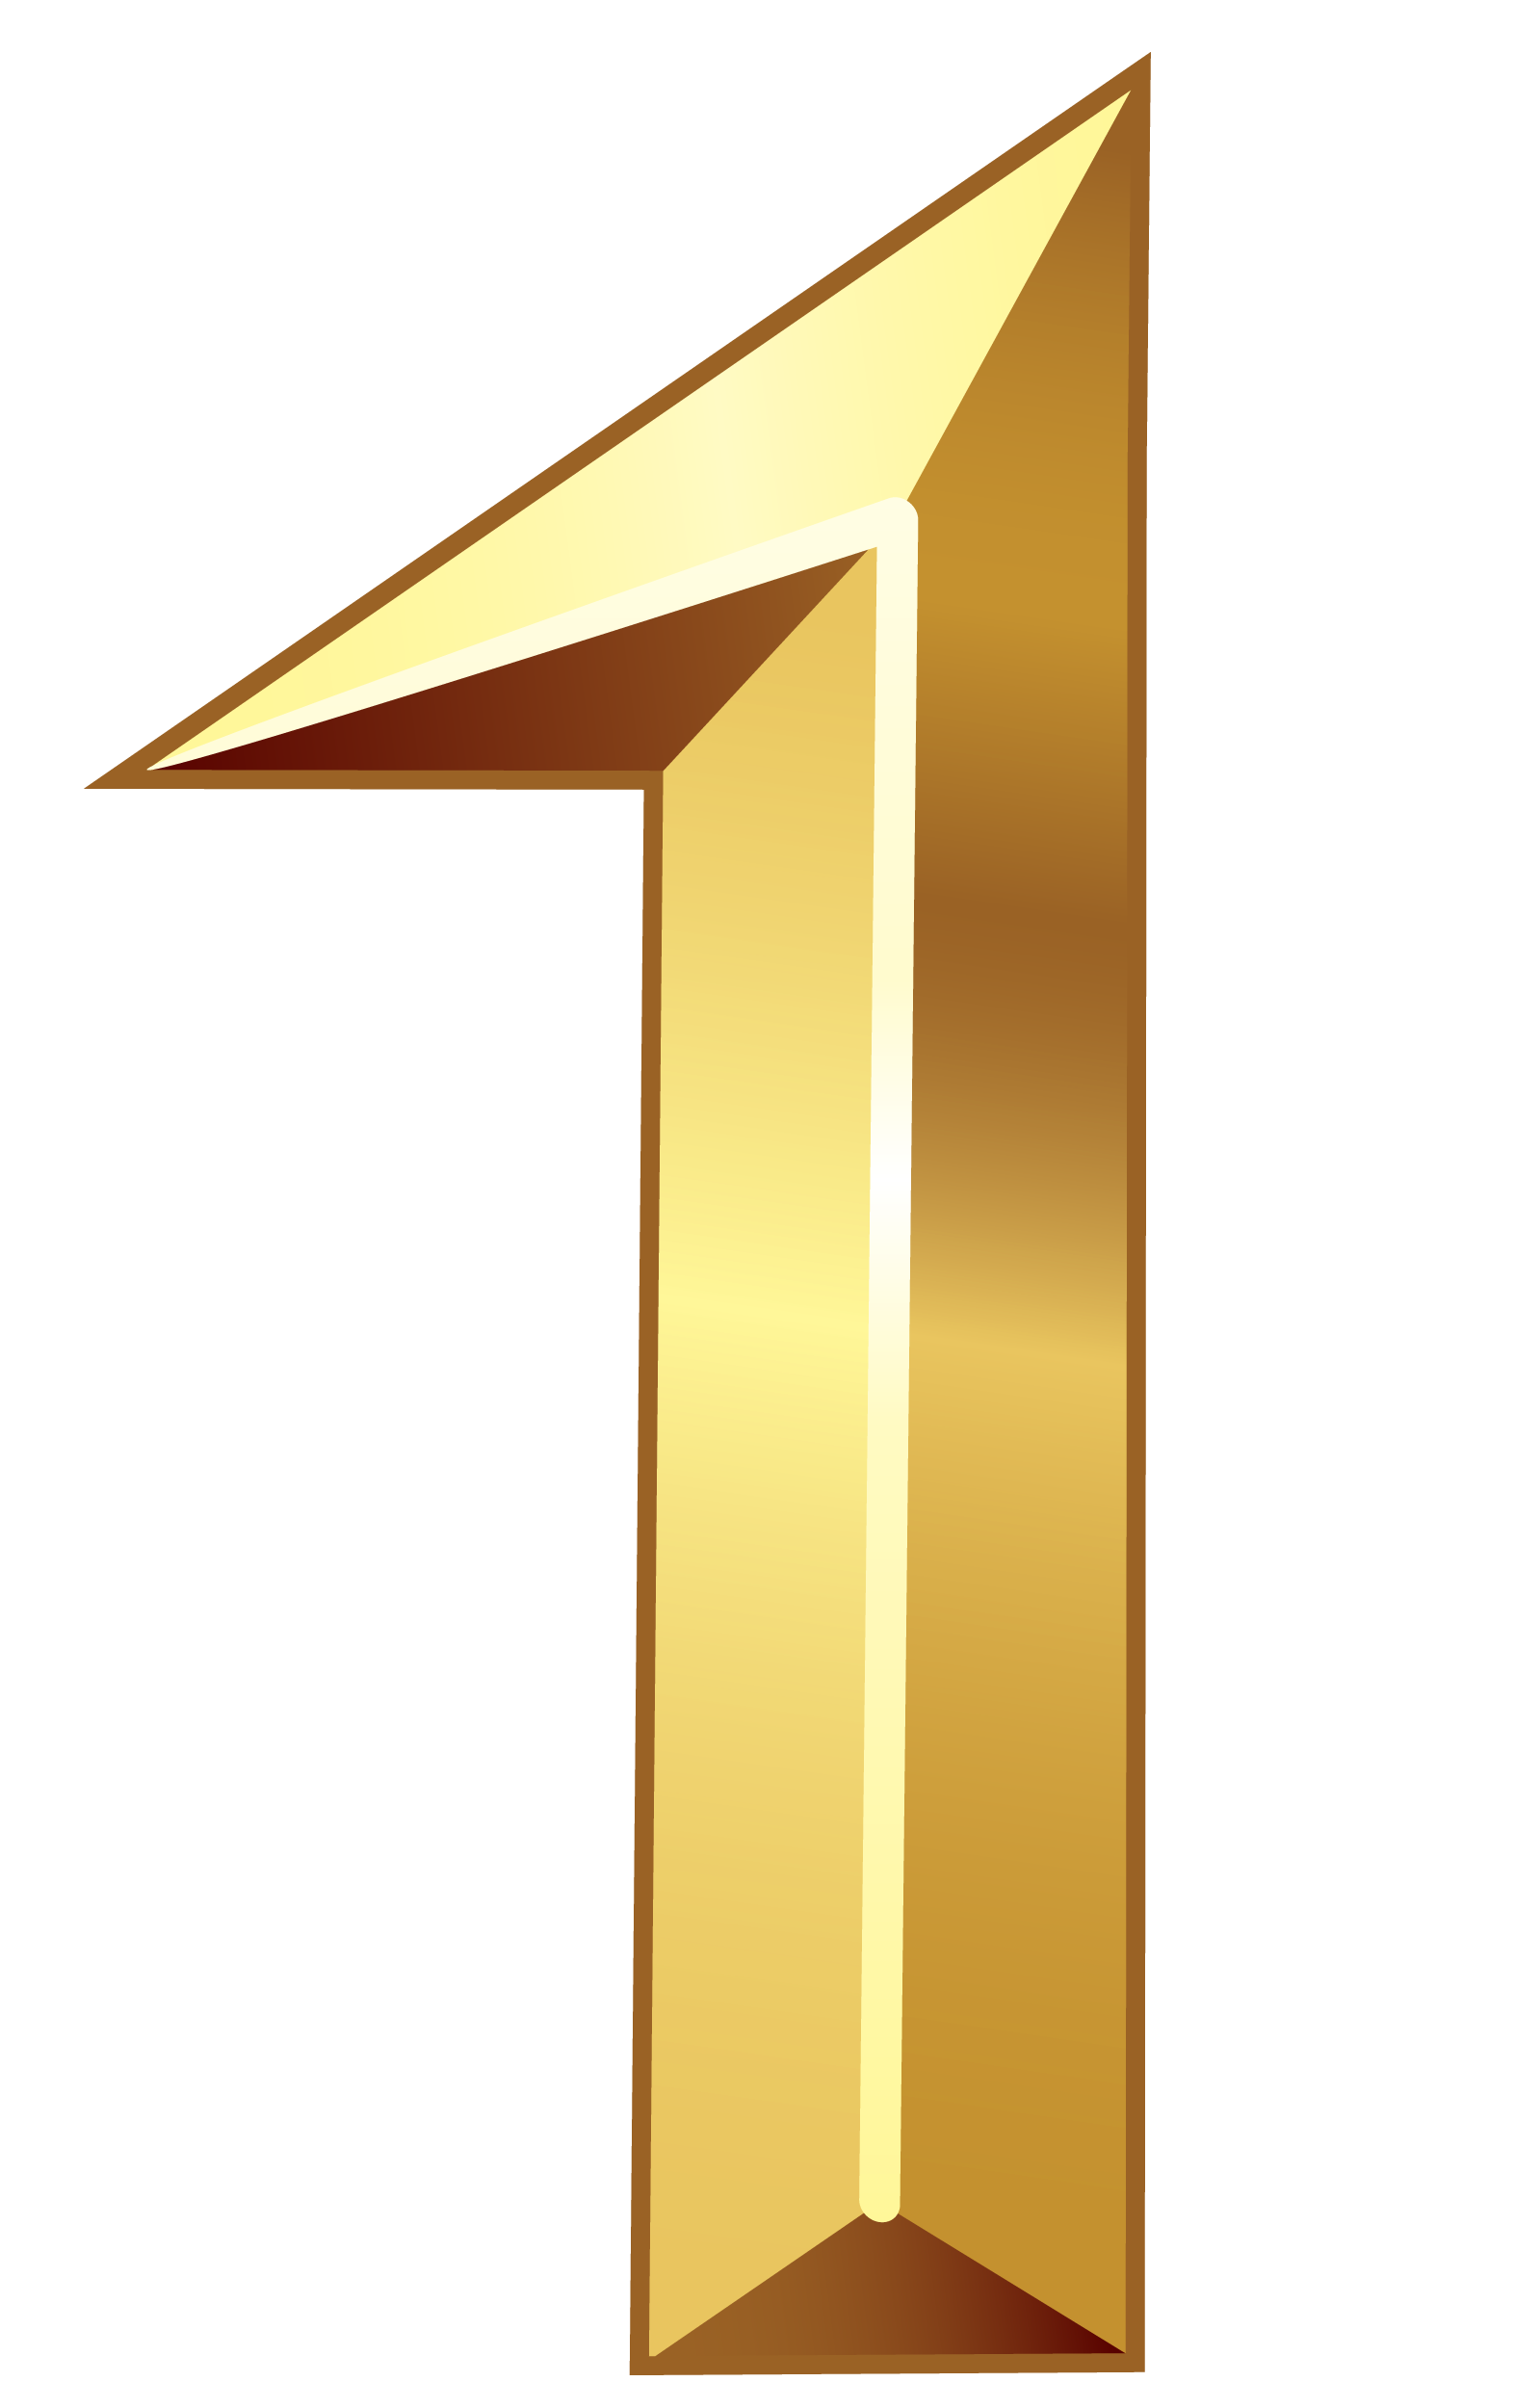 Number 1 clipart decorative. Gold one png image